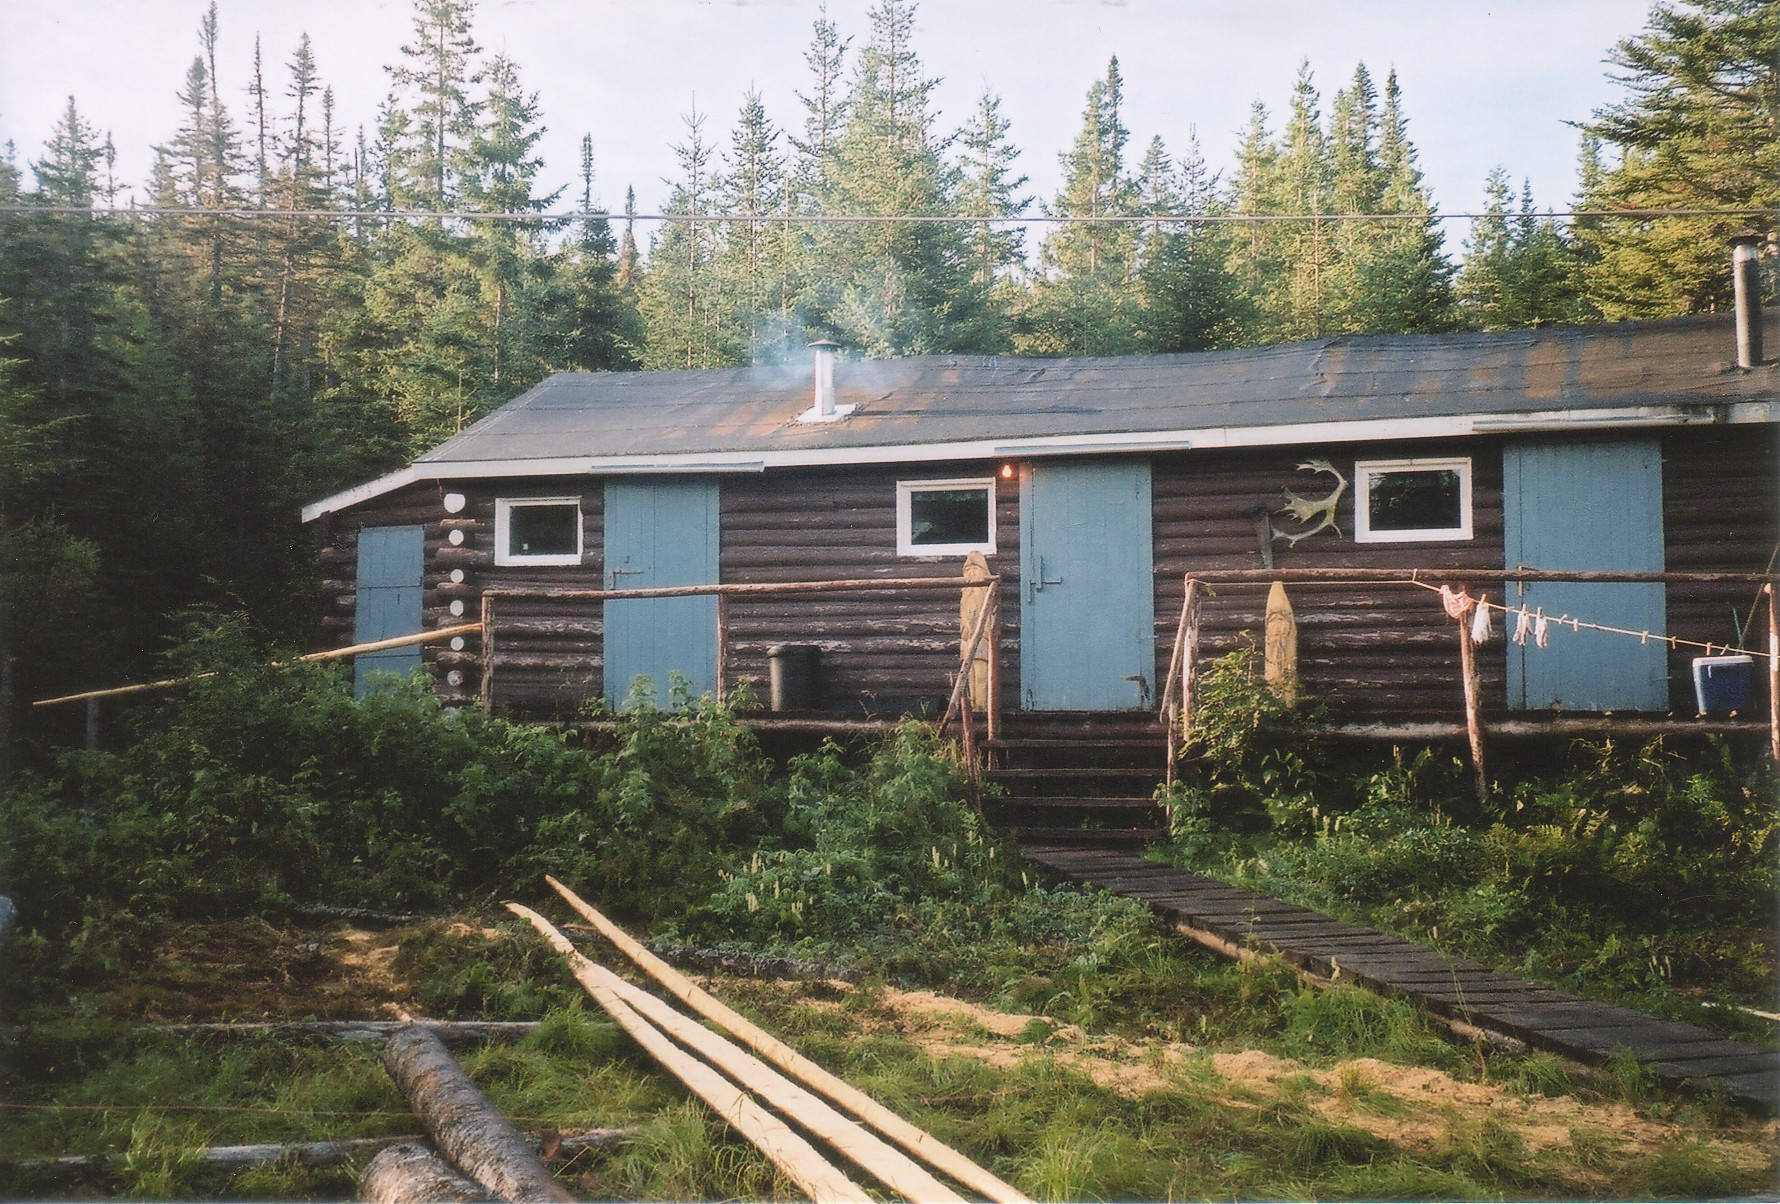 Camp at Deer Lake, Nfld